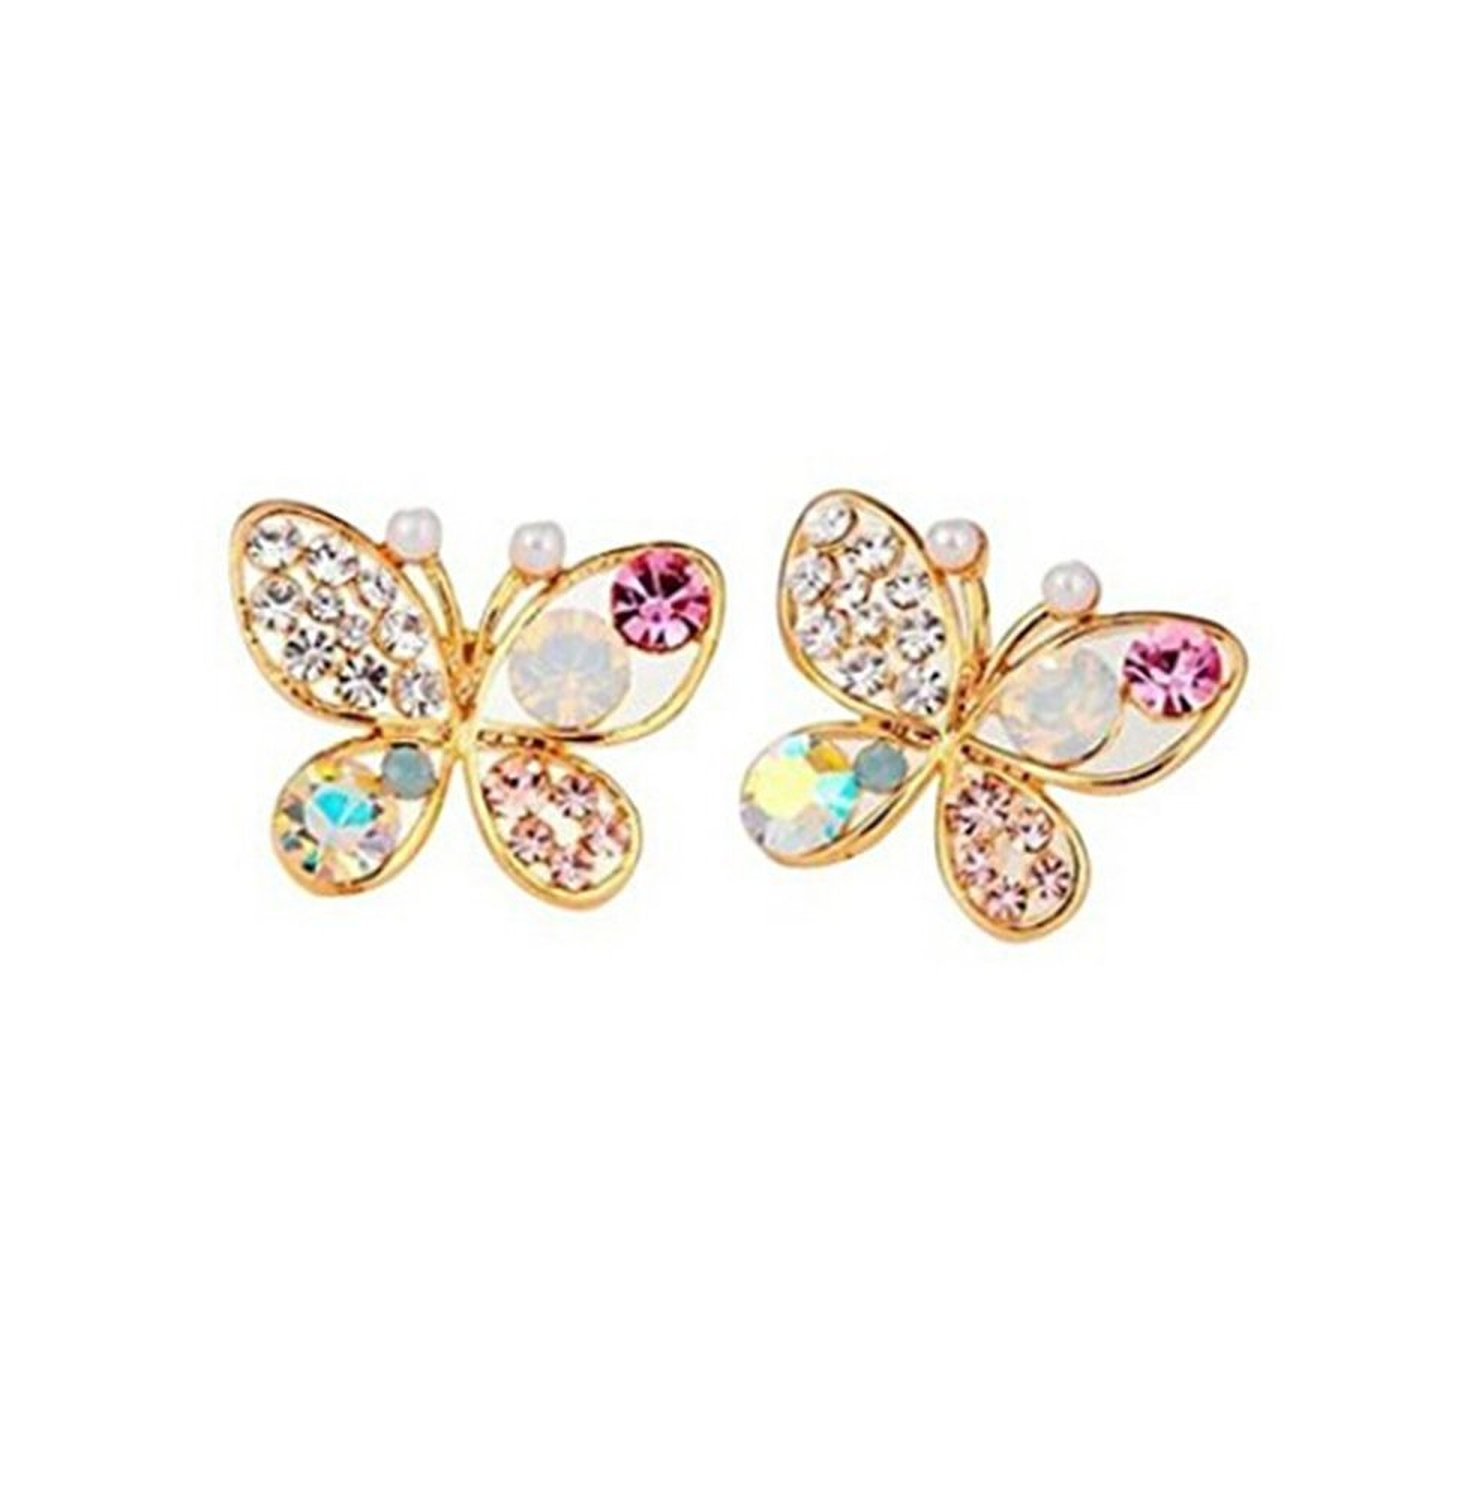 TR OD Hollow Out Colorful Shining Bling Crystal Rhinestone Cute